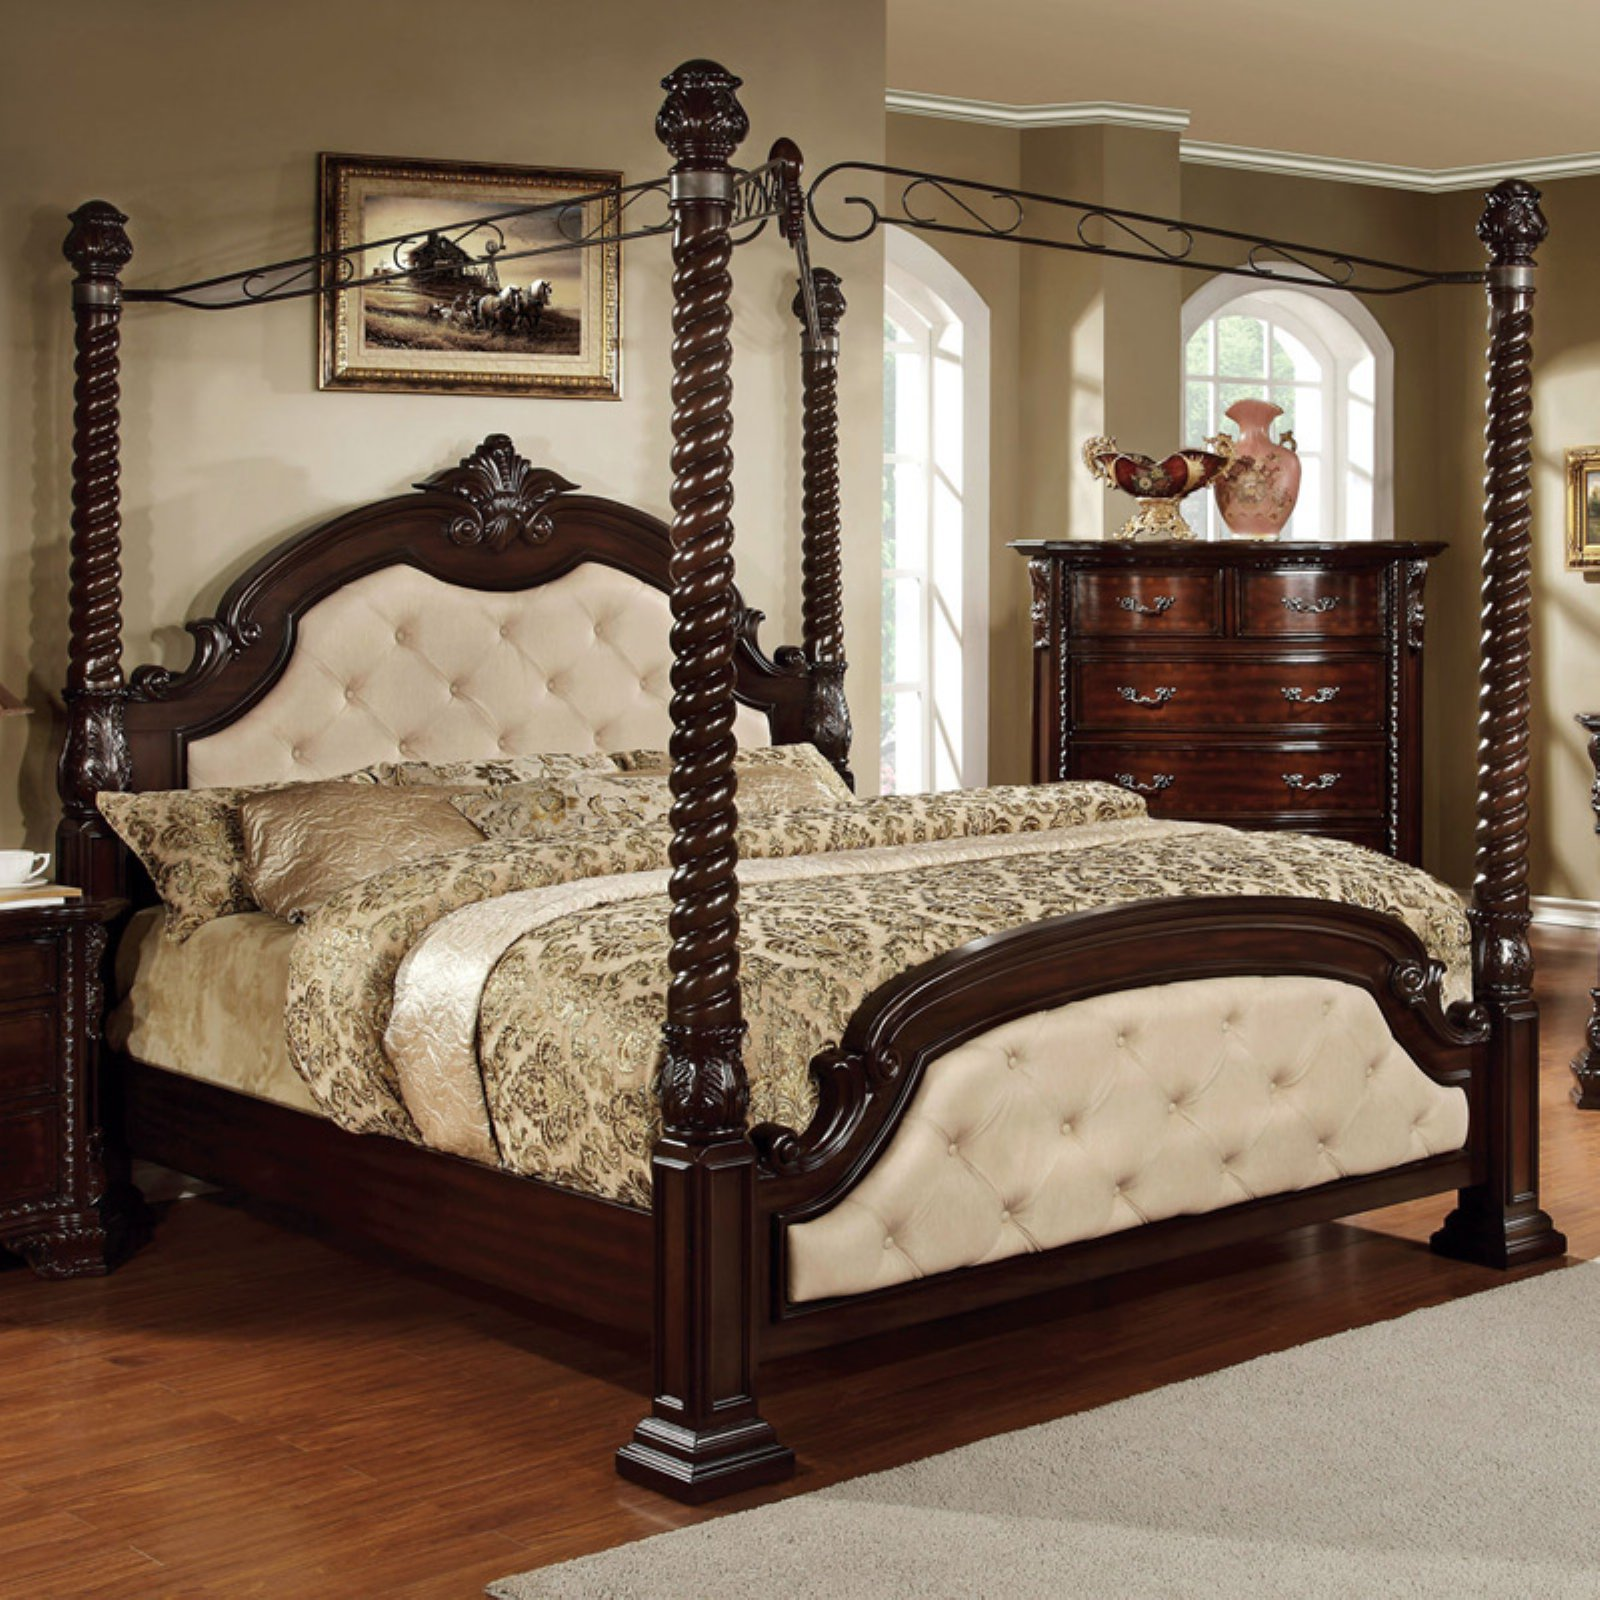 Furniture of America Sir Lanes Inspired Canopy Bed